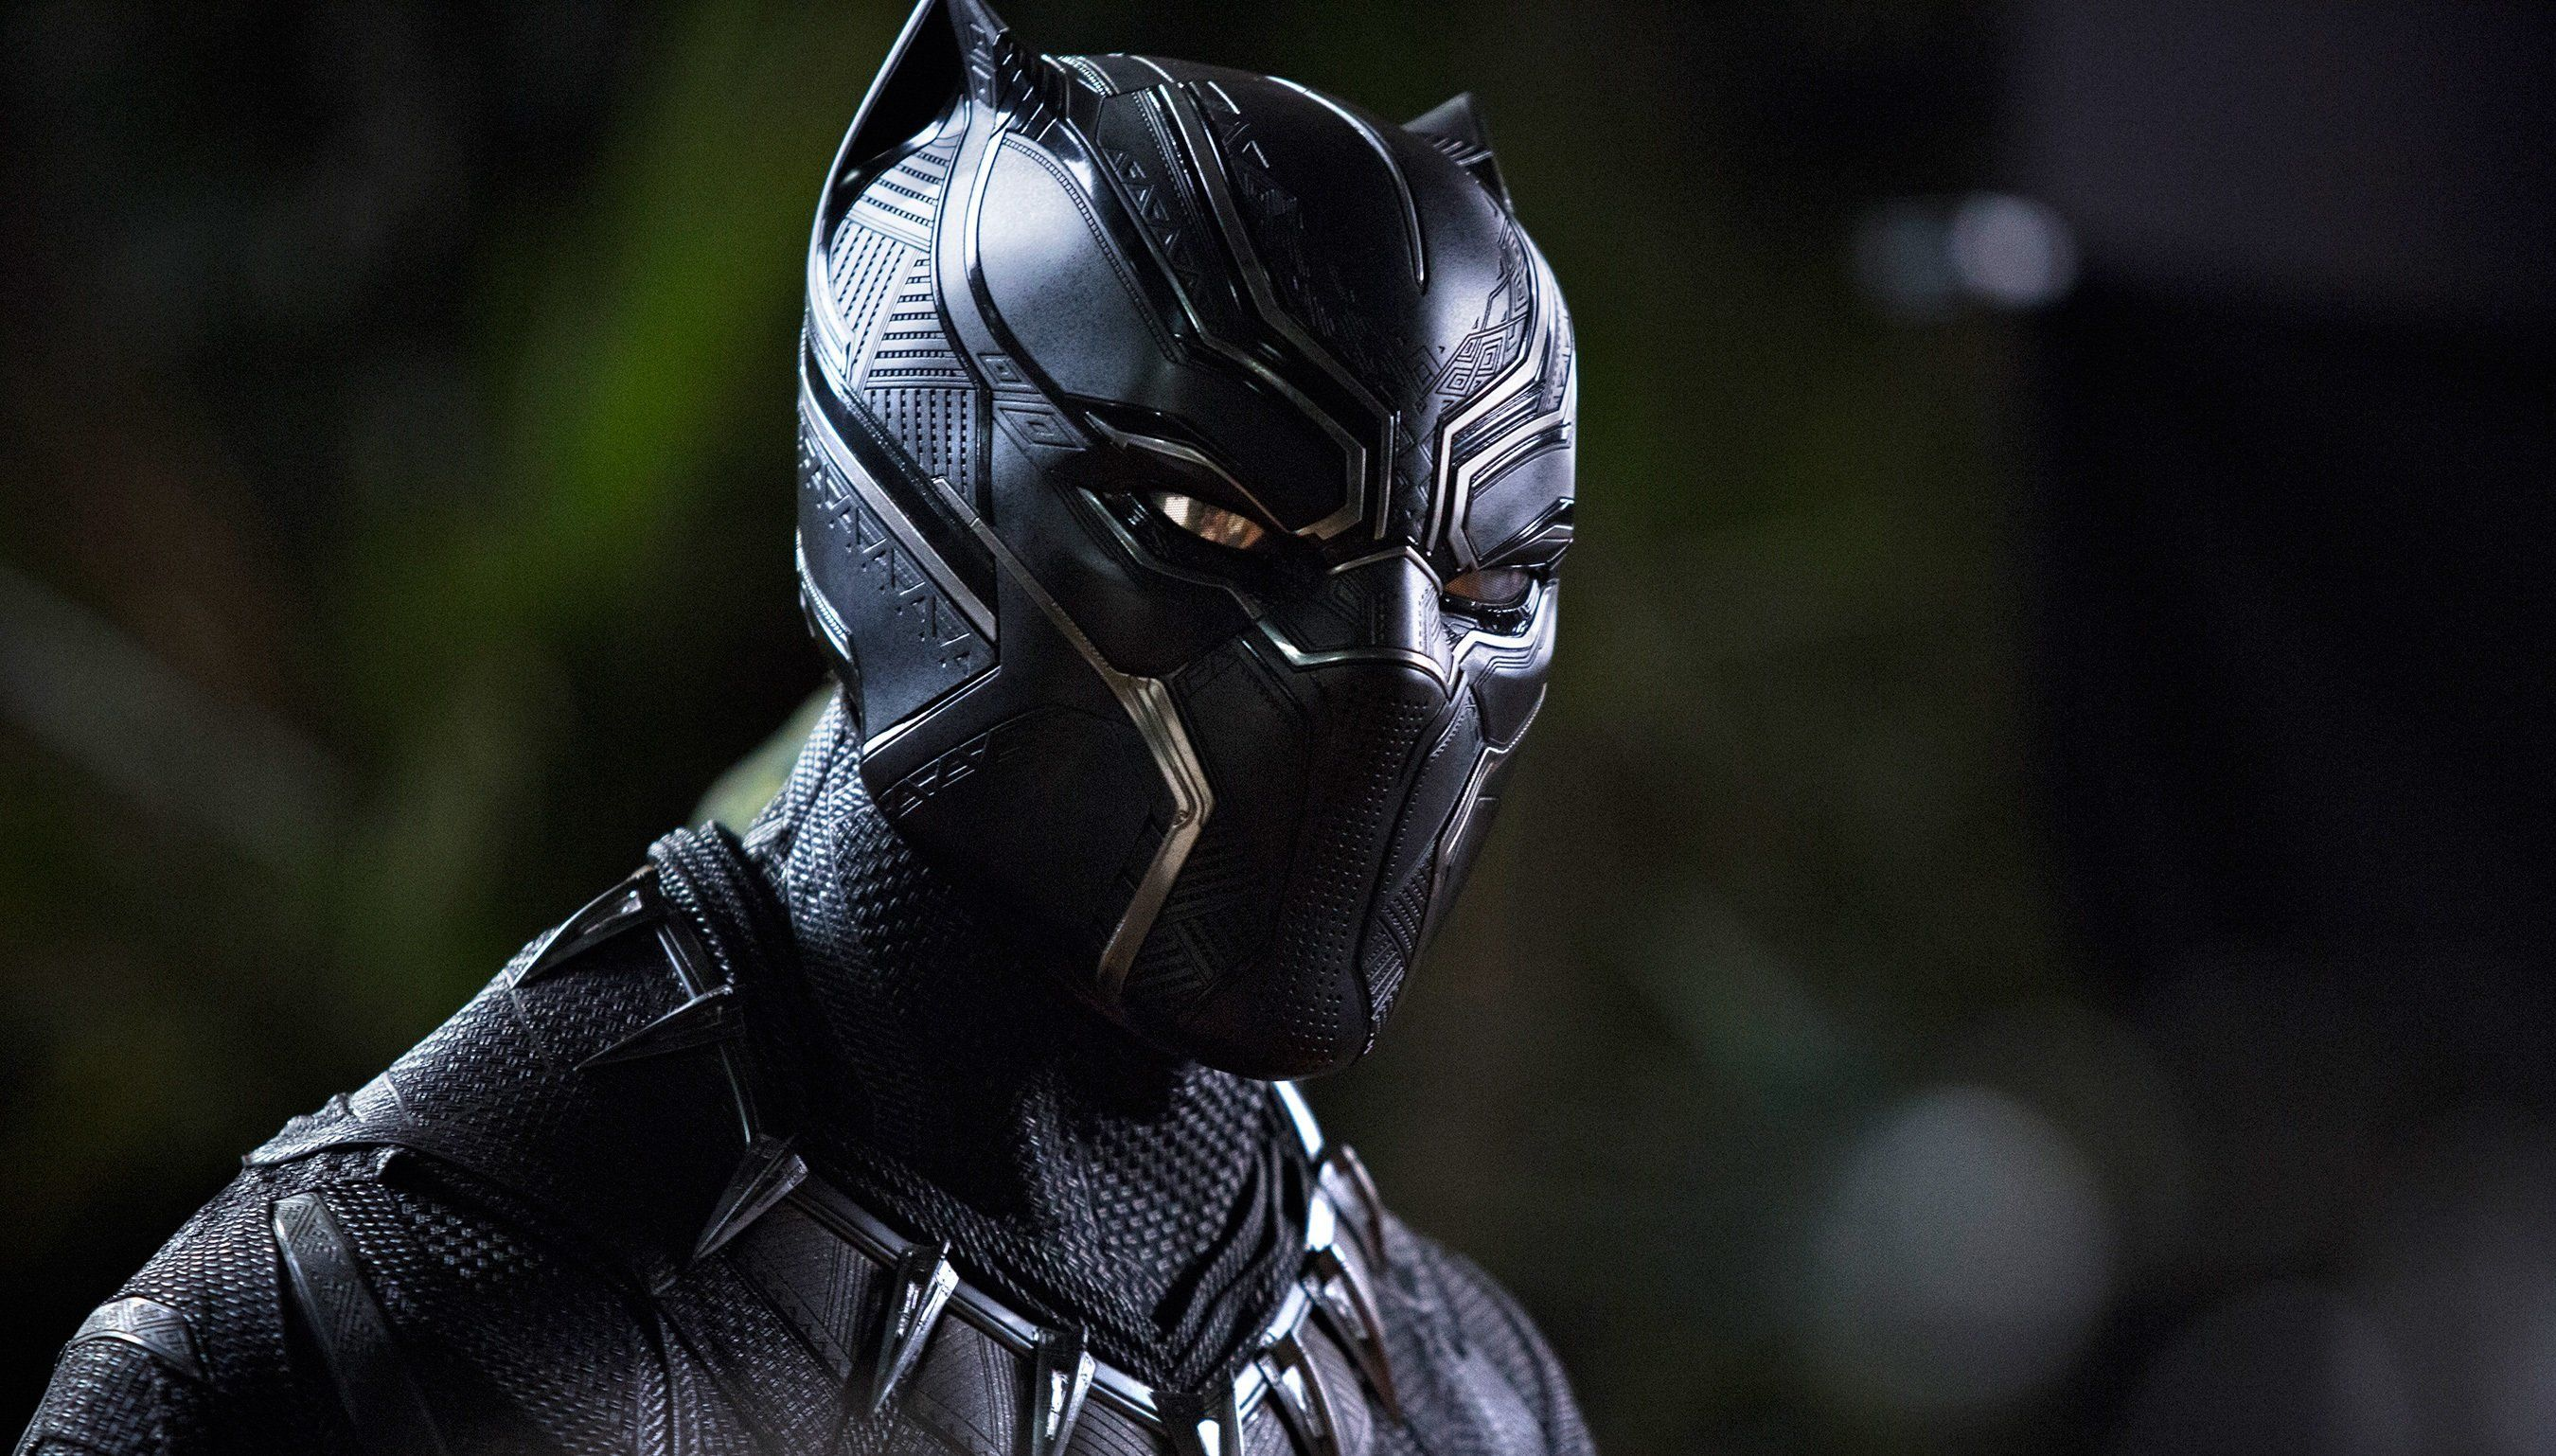 'Black Panther' Crosses $1.2 Billion Worldwide At Box Office